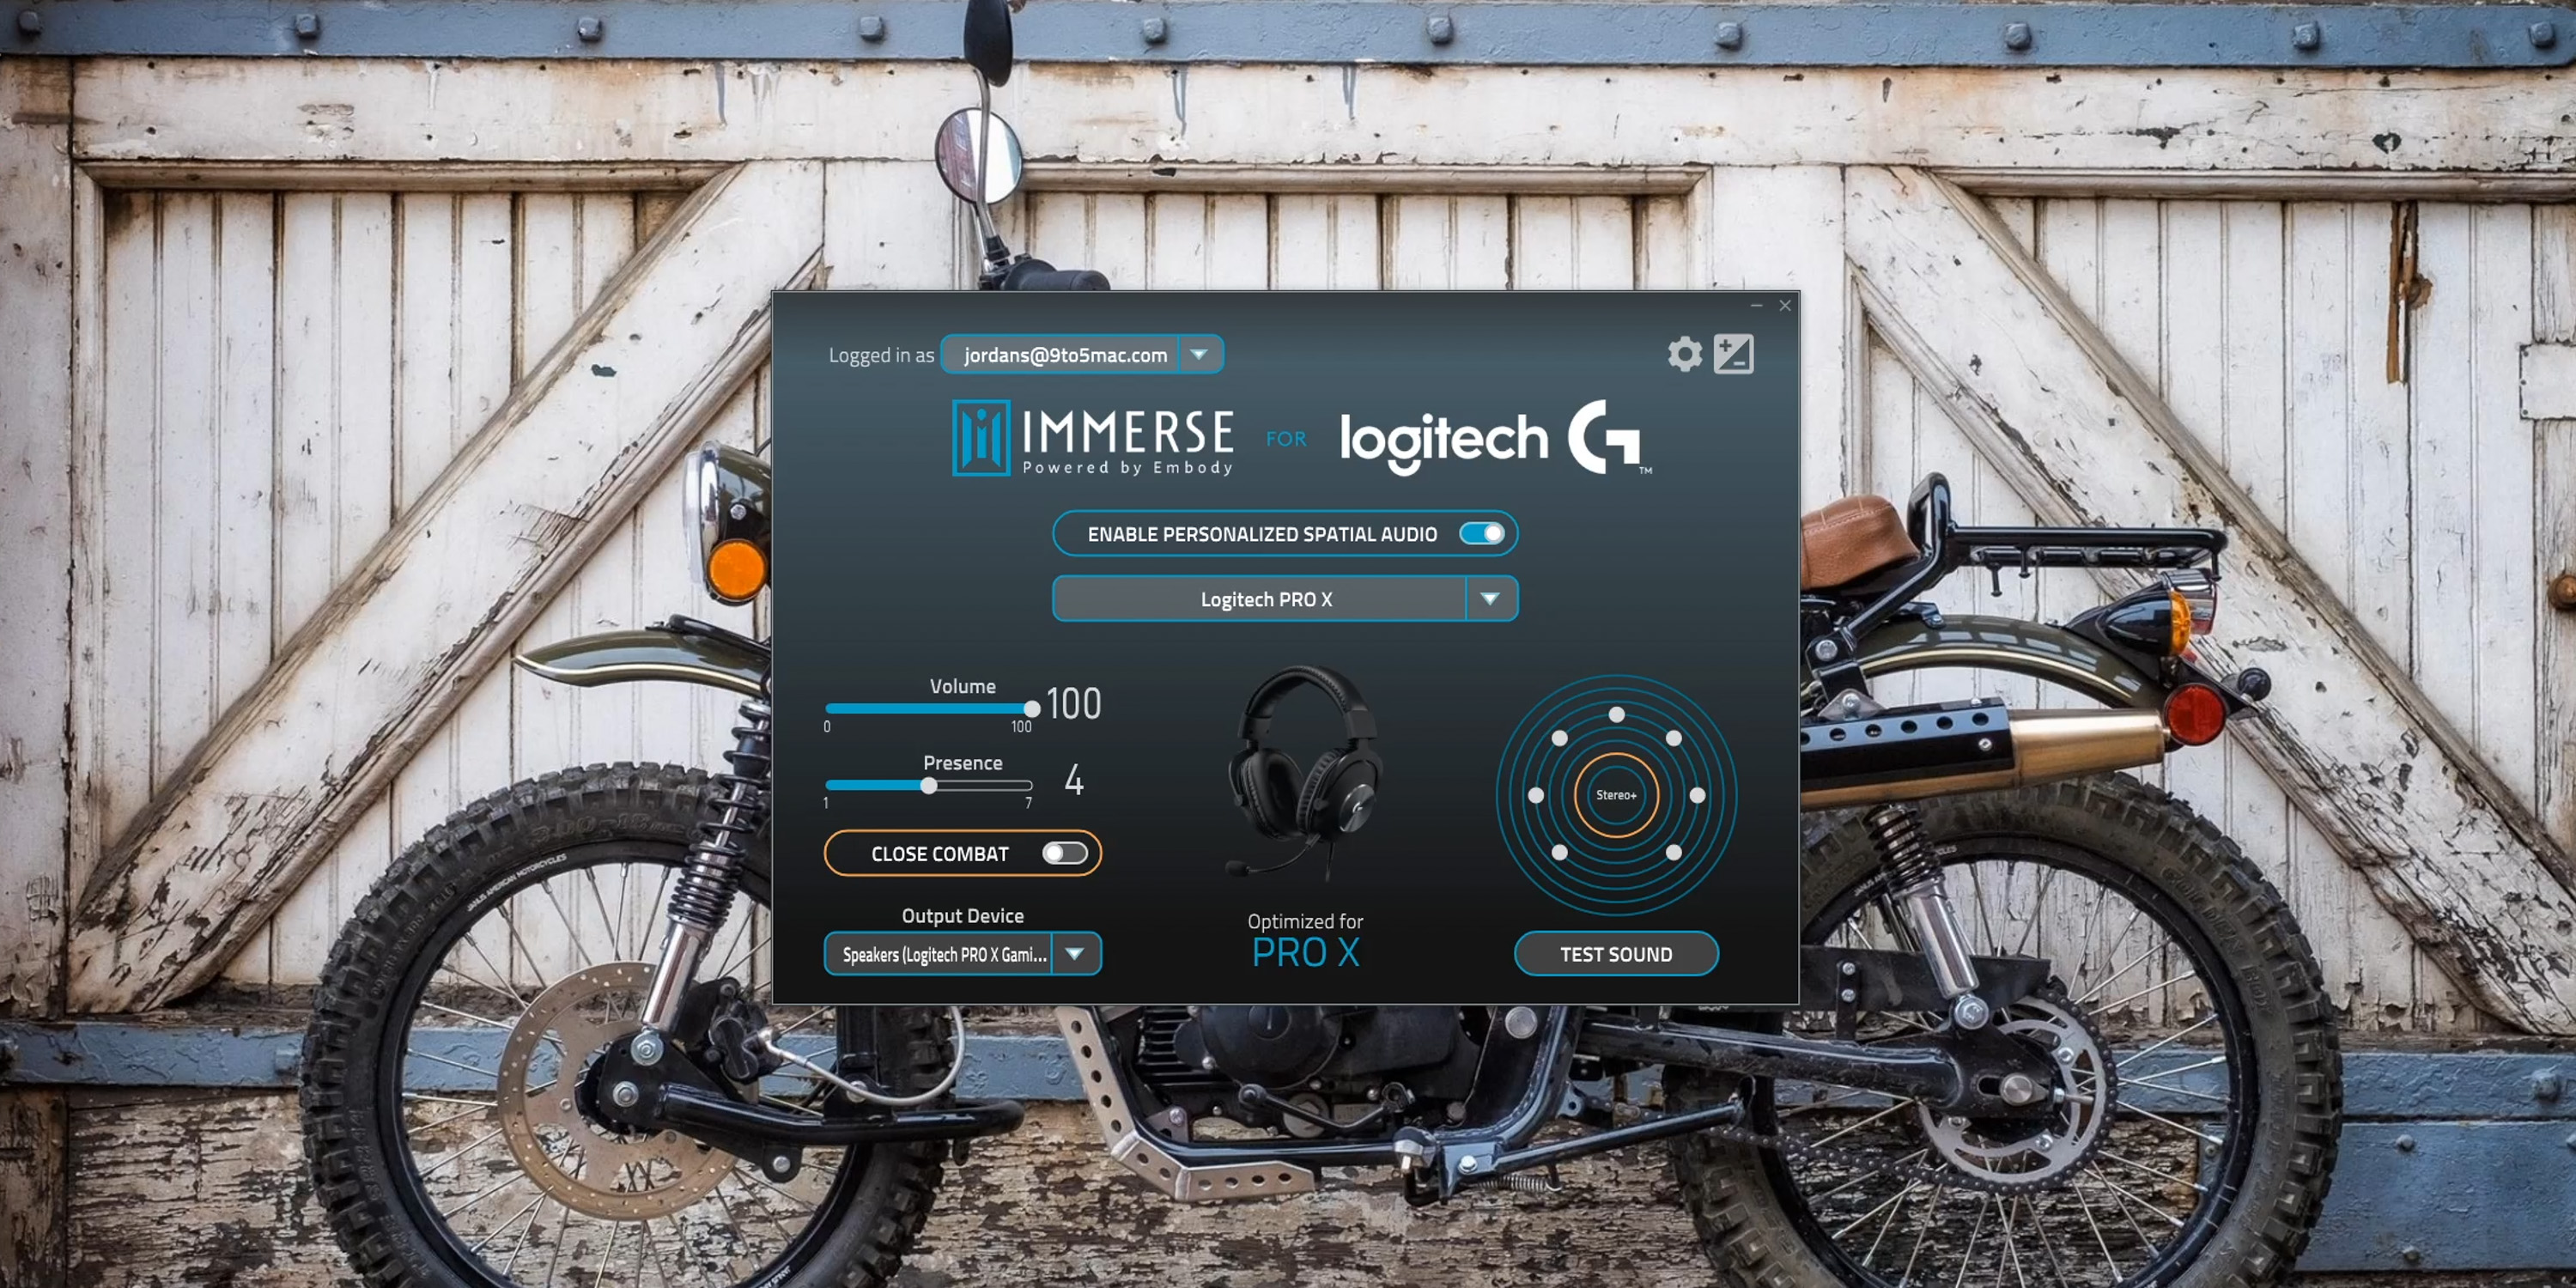 Settings inside Immerse for Logitech G